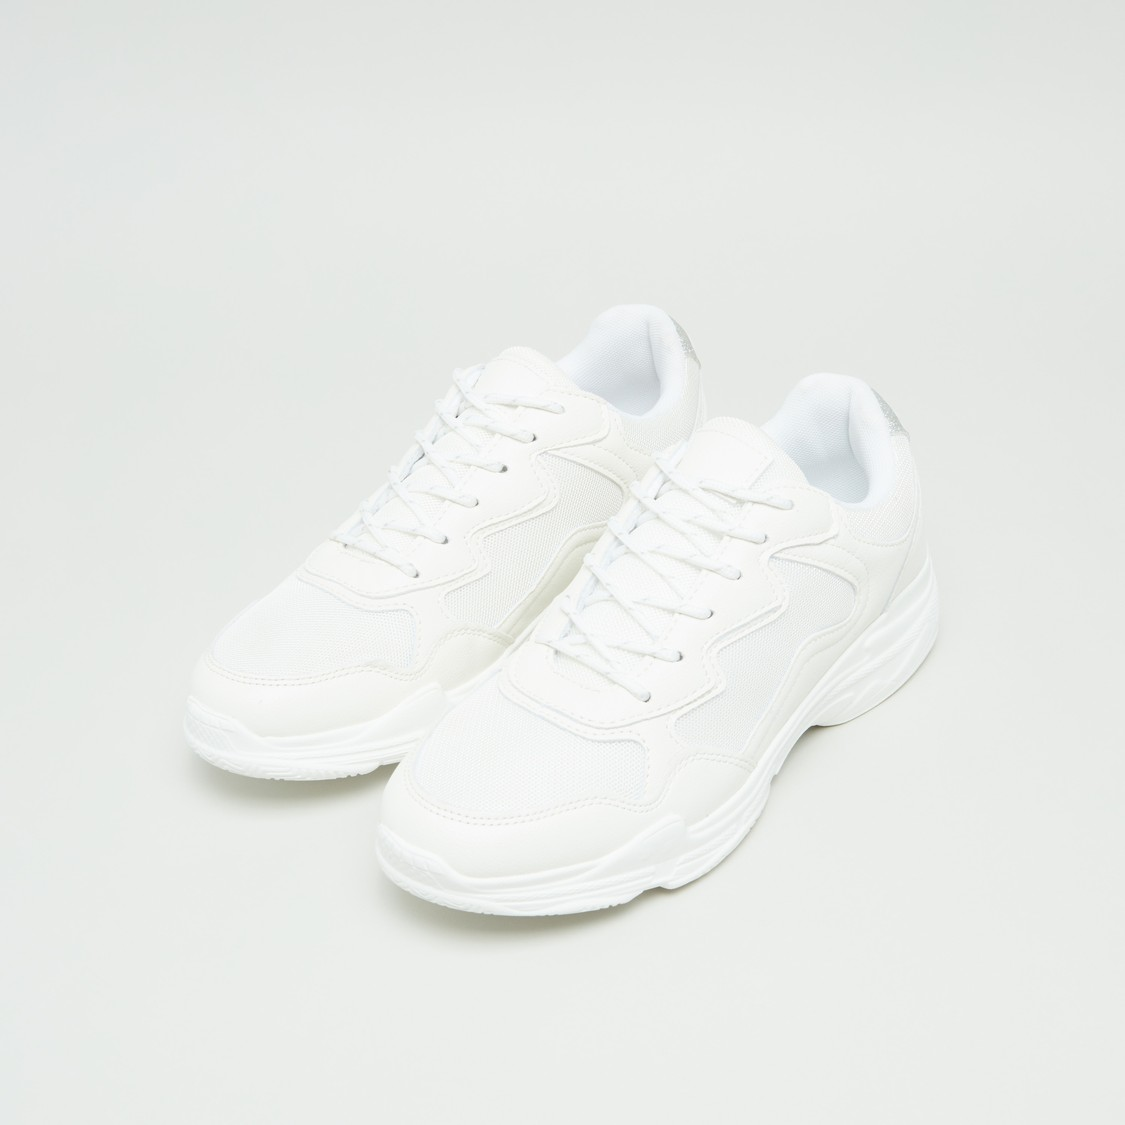 Stitch Detail Sneakers with Lace-Up